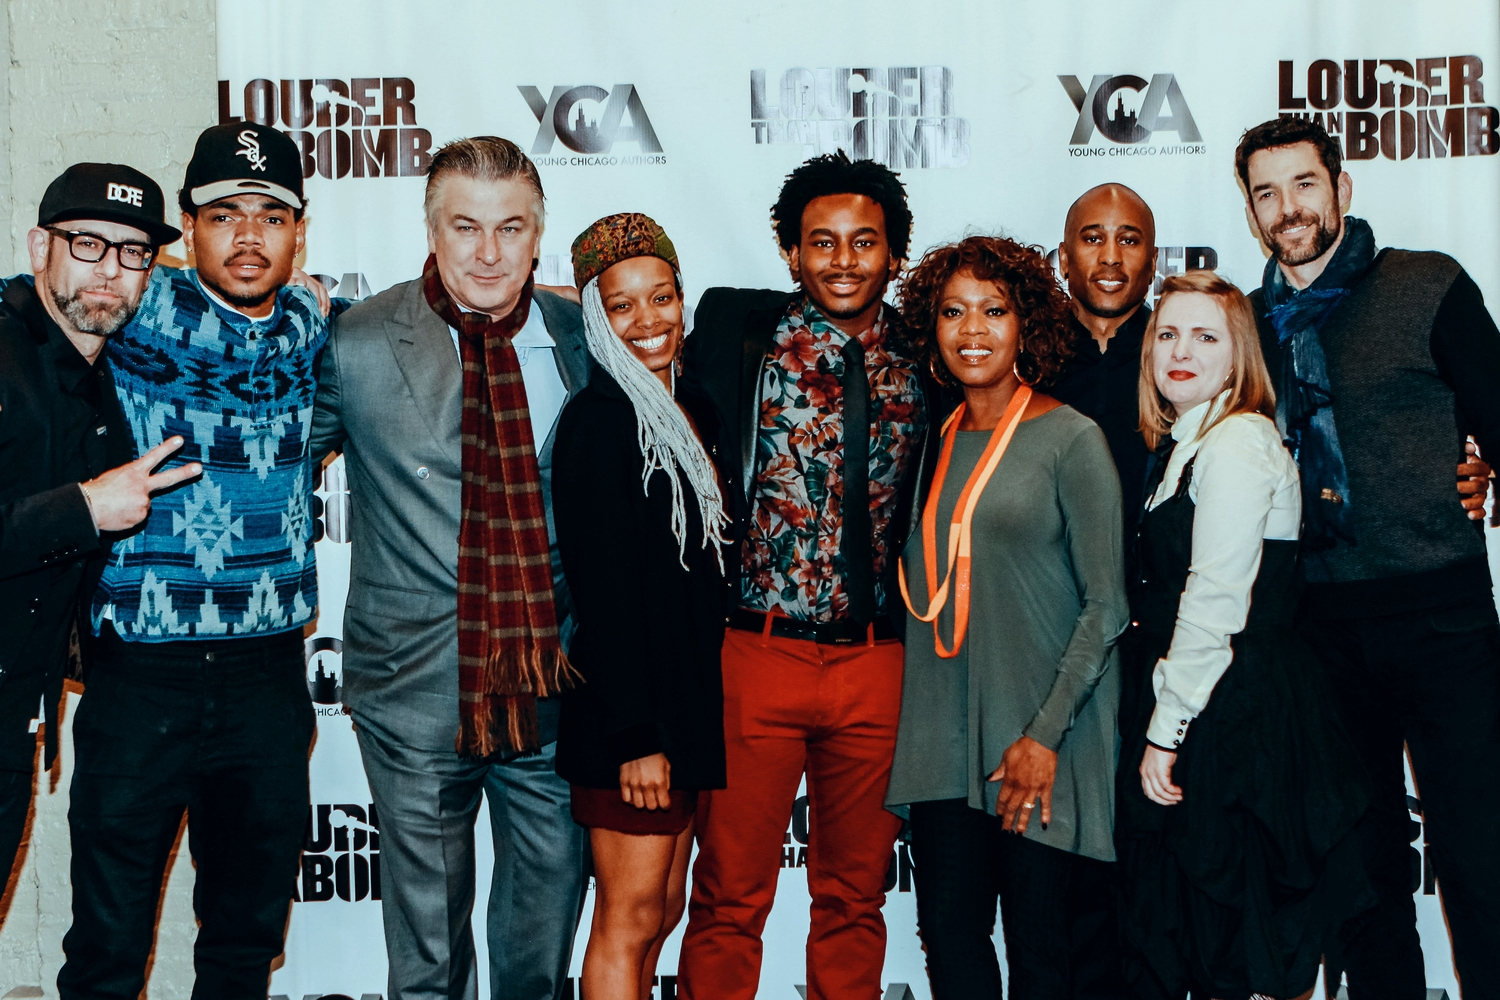 with Artistic Director Kevin Coval, Chance The Rapper, Associate Artistic Director Jamila Woods, National Organizer Malcolm London, Executive Director Rebecca Hunter, National Director of Special Operations Sean Kaplan